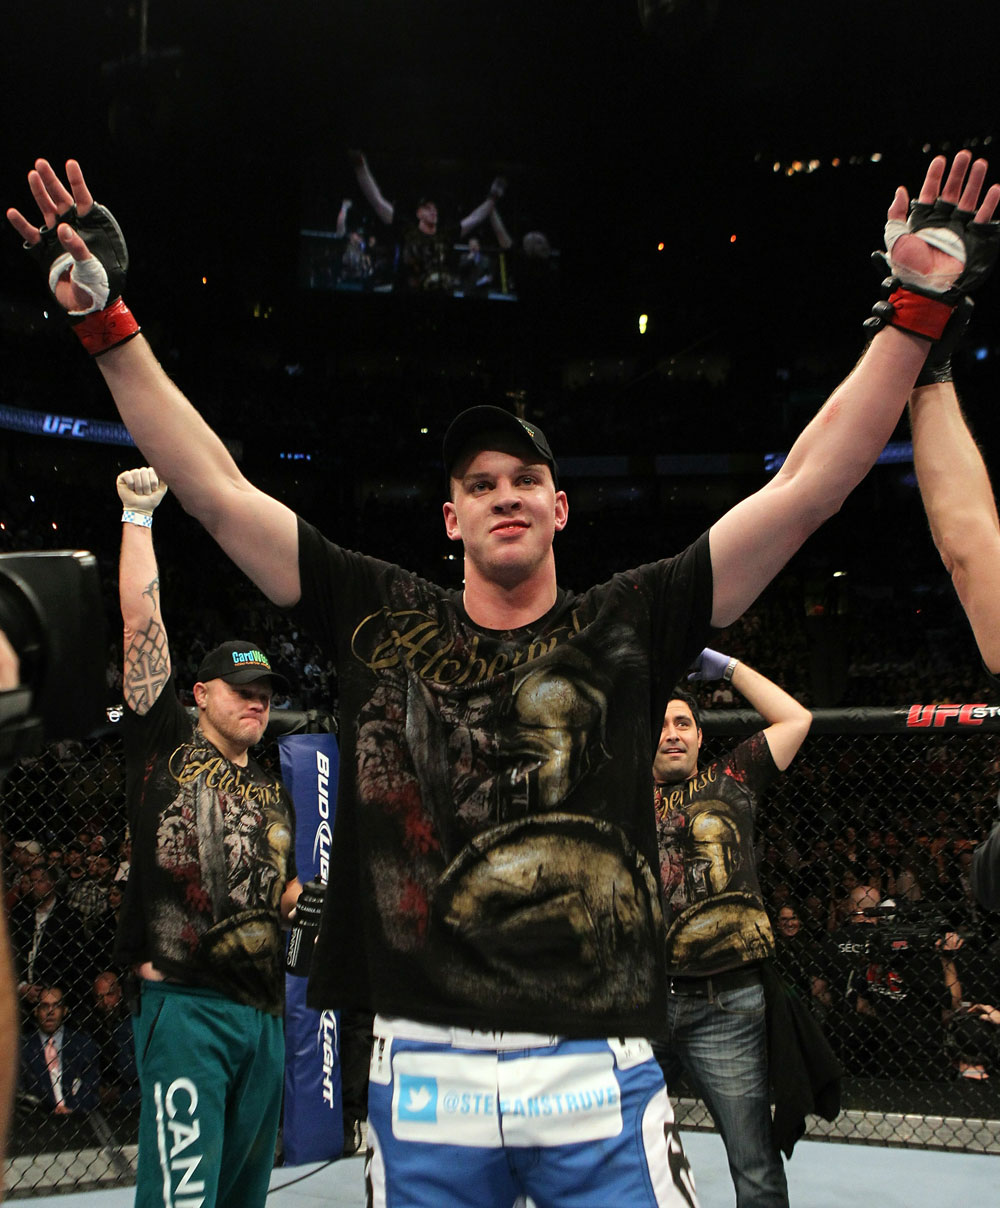 UFC 124: Stefan Struve after his win.